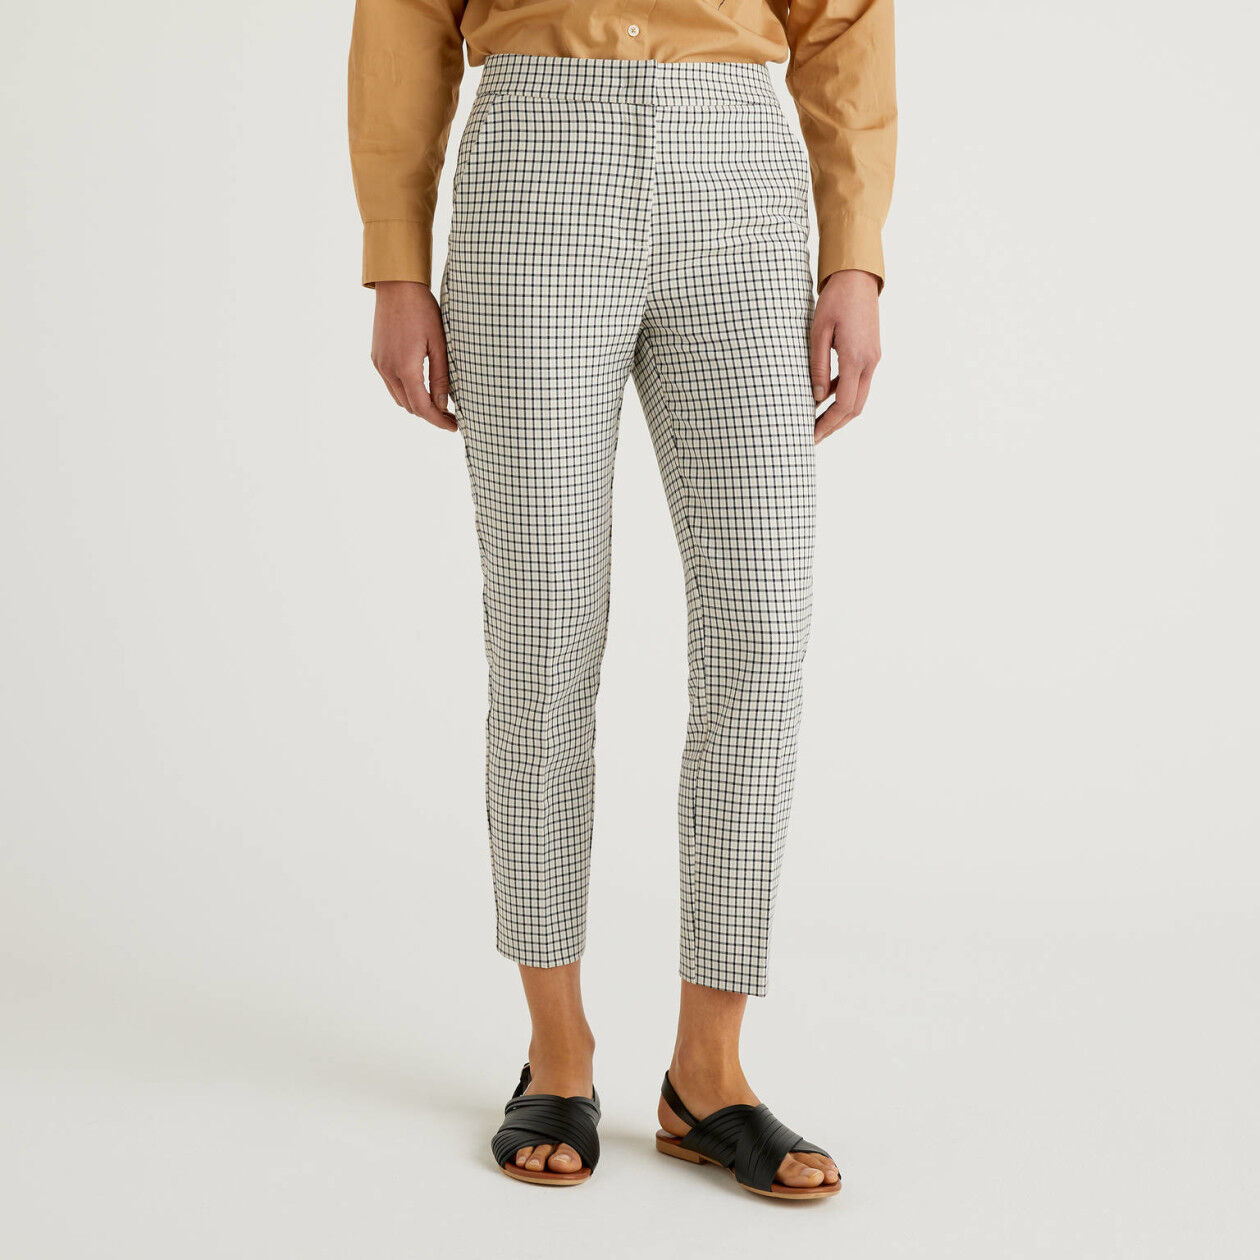 Trousers with check pattern